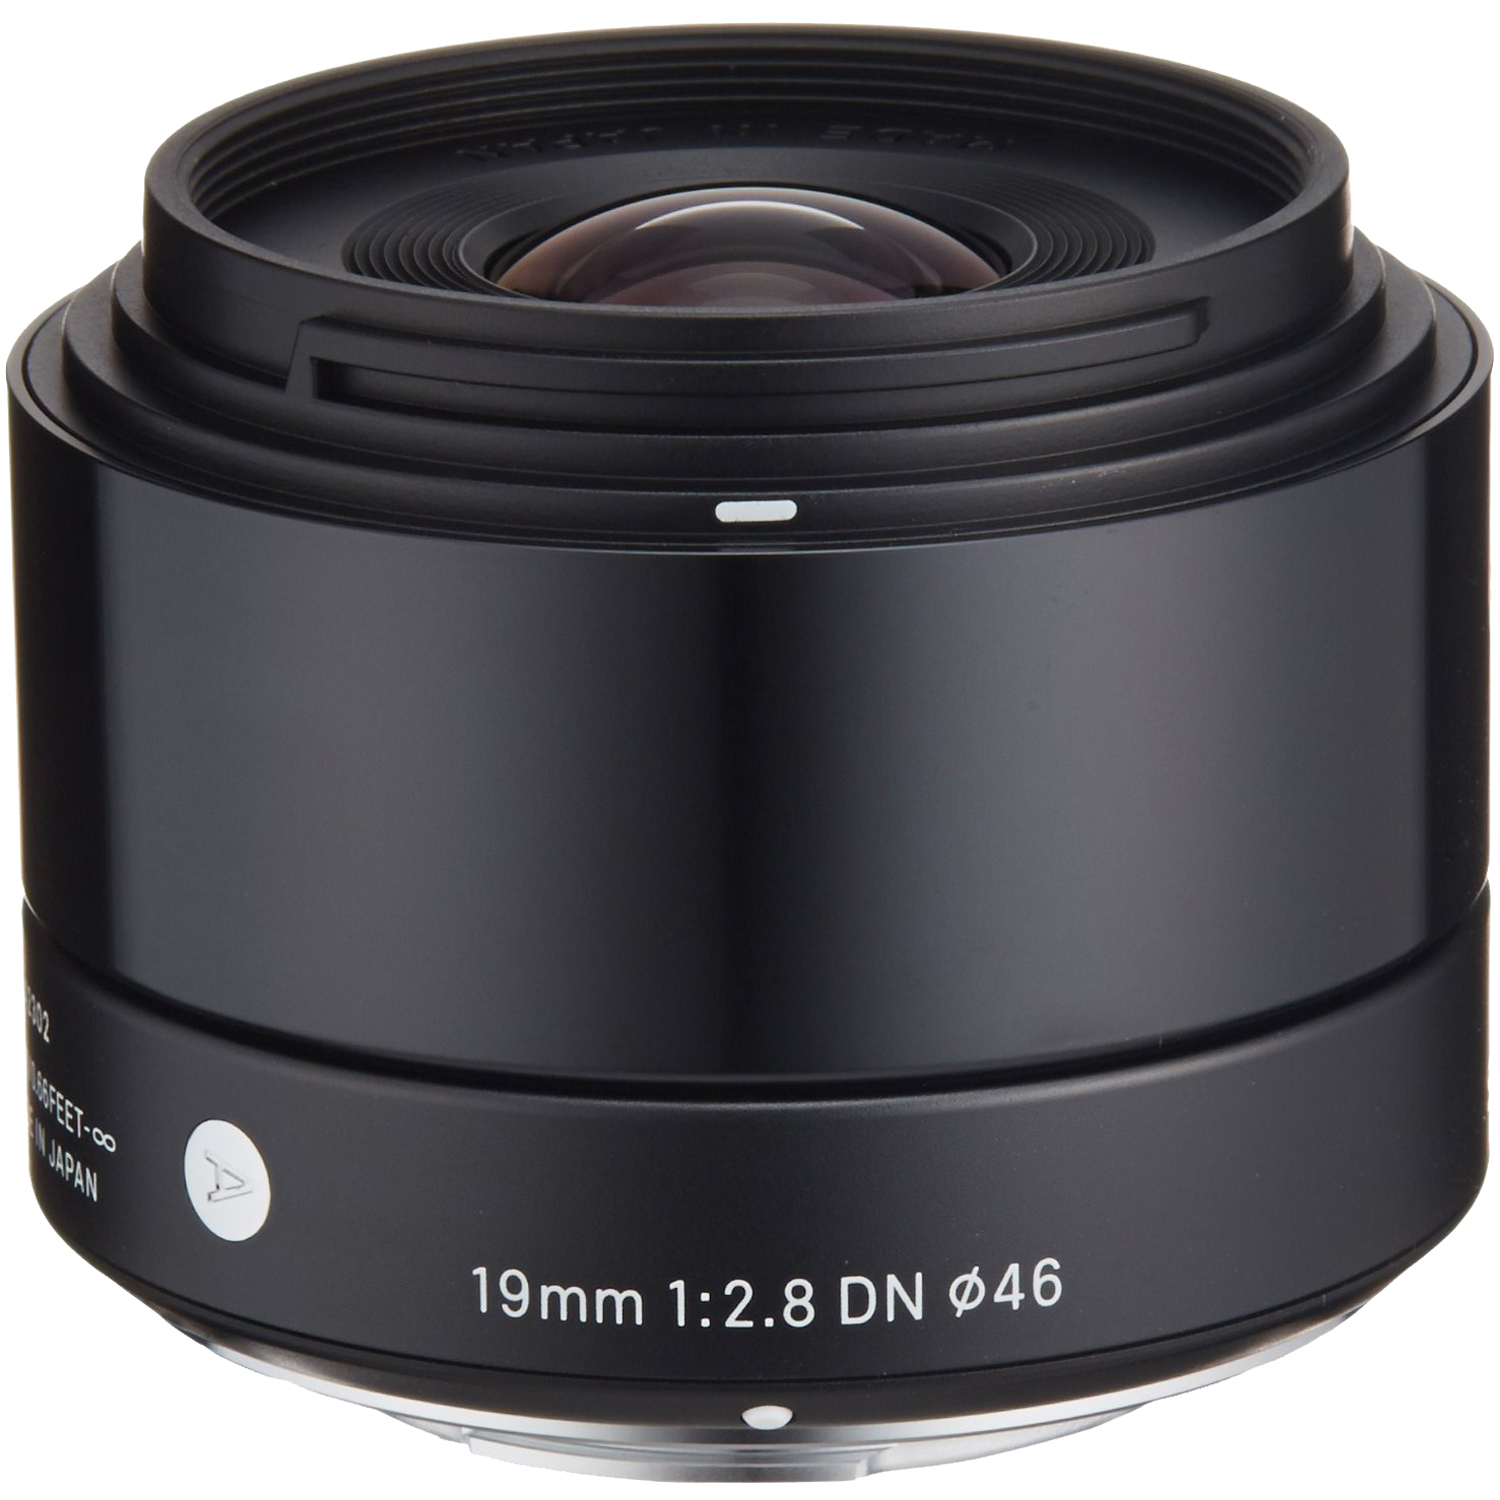 Sigma 19mm f/2.8 EX DN Art Lens (for Sony Alpha E-Mount Cameras)